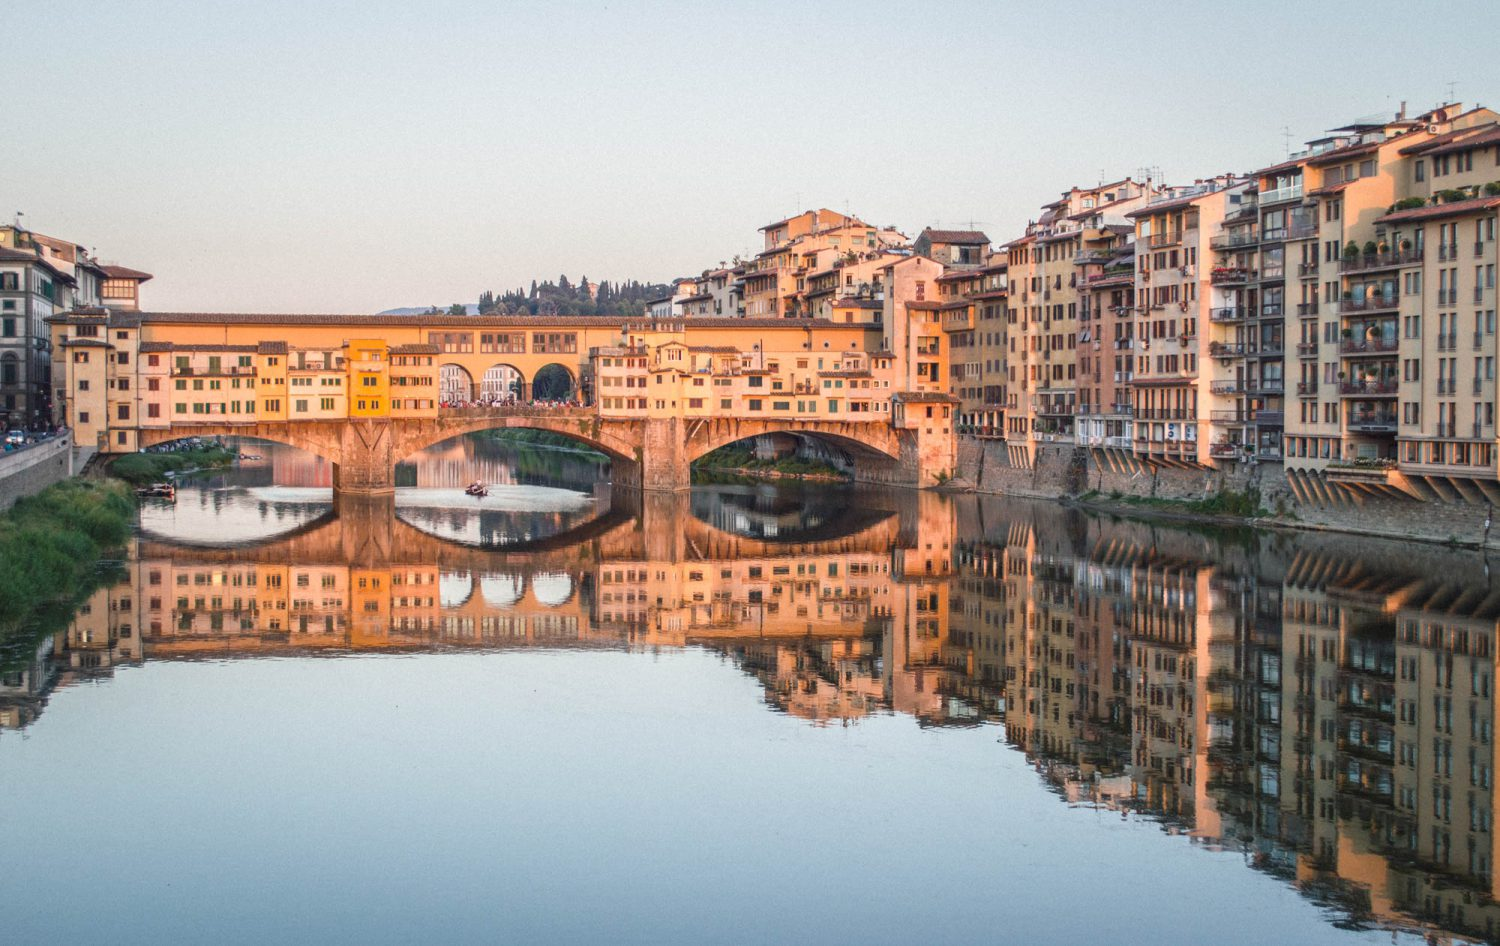 Learn Italian in Italy? YES! This post details what to look for when choosing the perfect Italian language course in Florence.